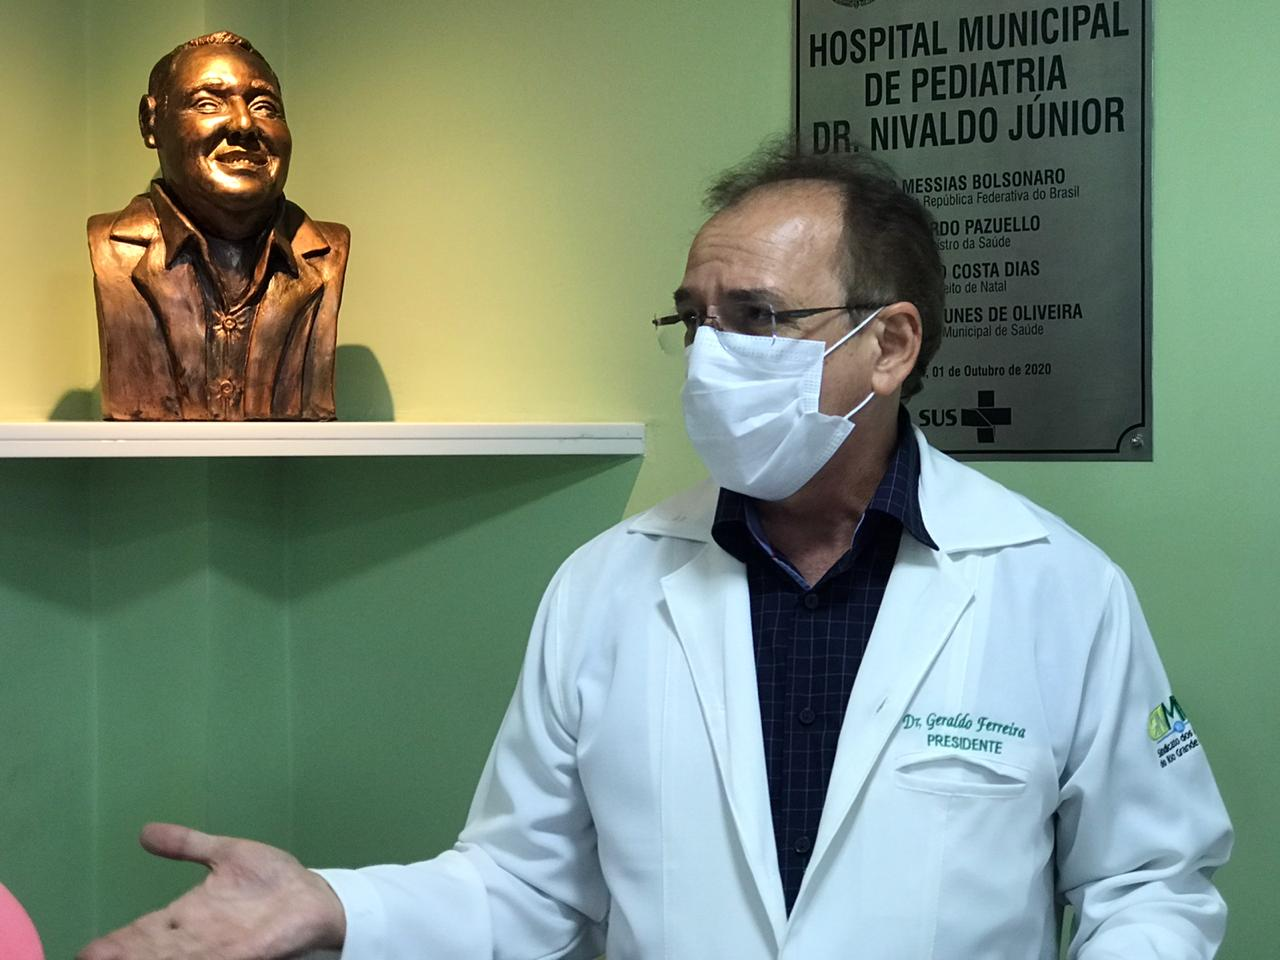 Visita ao Hospital Municipal Dr. Nivaldo Junior